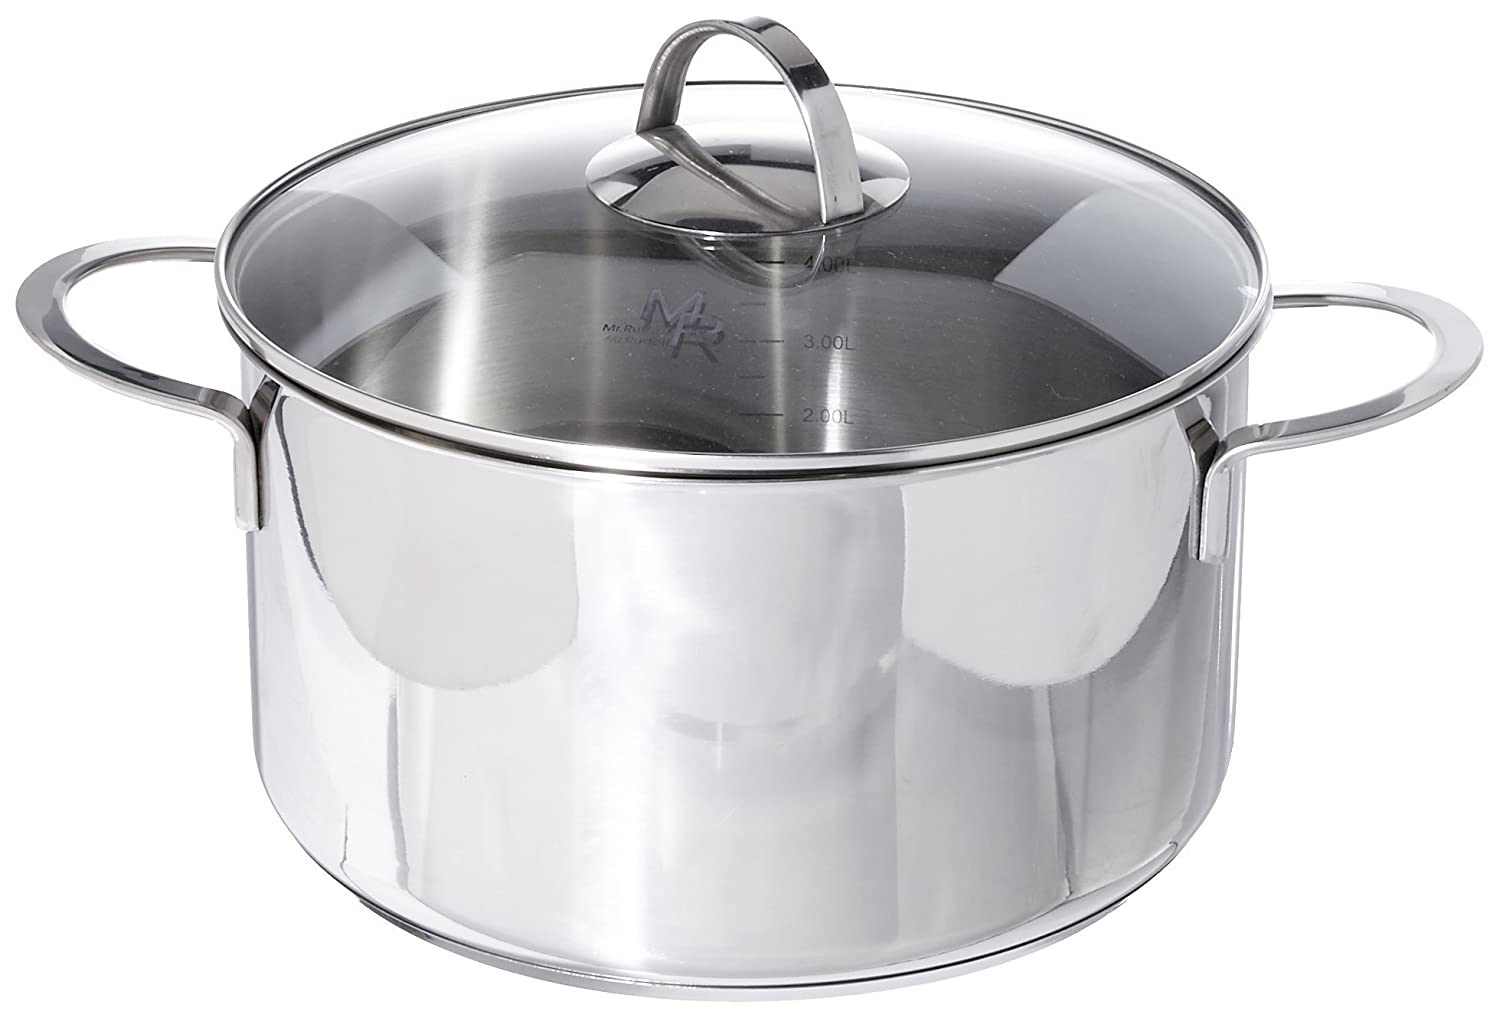 Mr Rudolf 3.2 Quart 18/10 Stainless Steel 2 Handle Stock Pot with Glass Lid Dishwasher Safe PFOA Free Stockpots Casserole 20cm 3 Liter Dutch Oven Ltd LN-2011